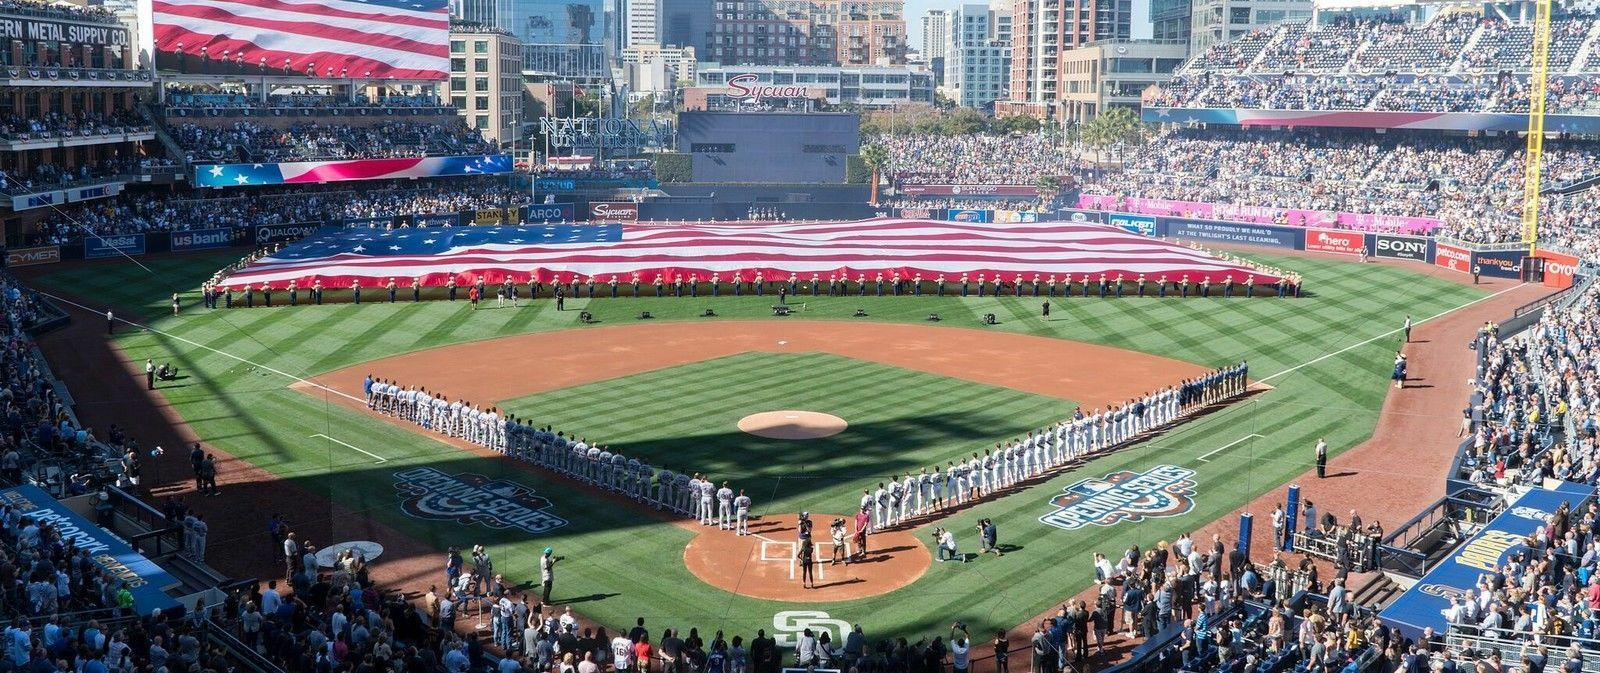 New York Mets at San Diego Padres